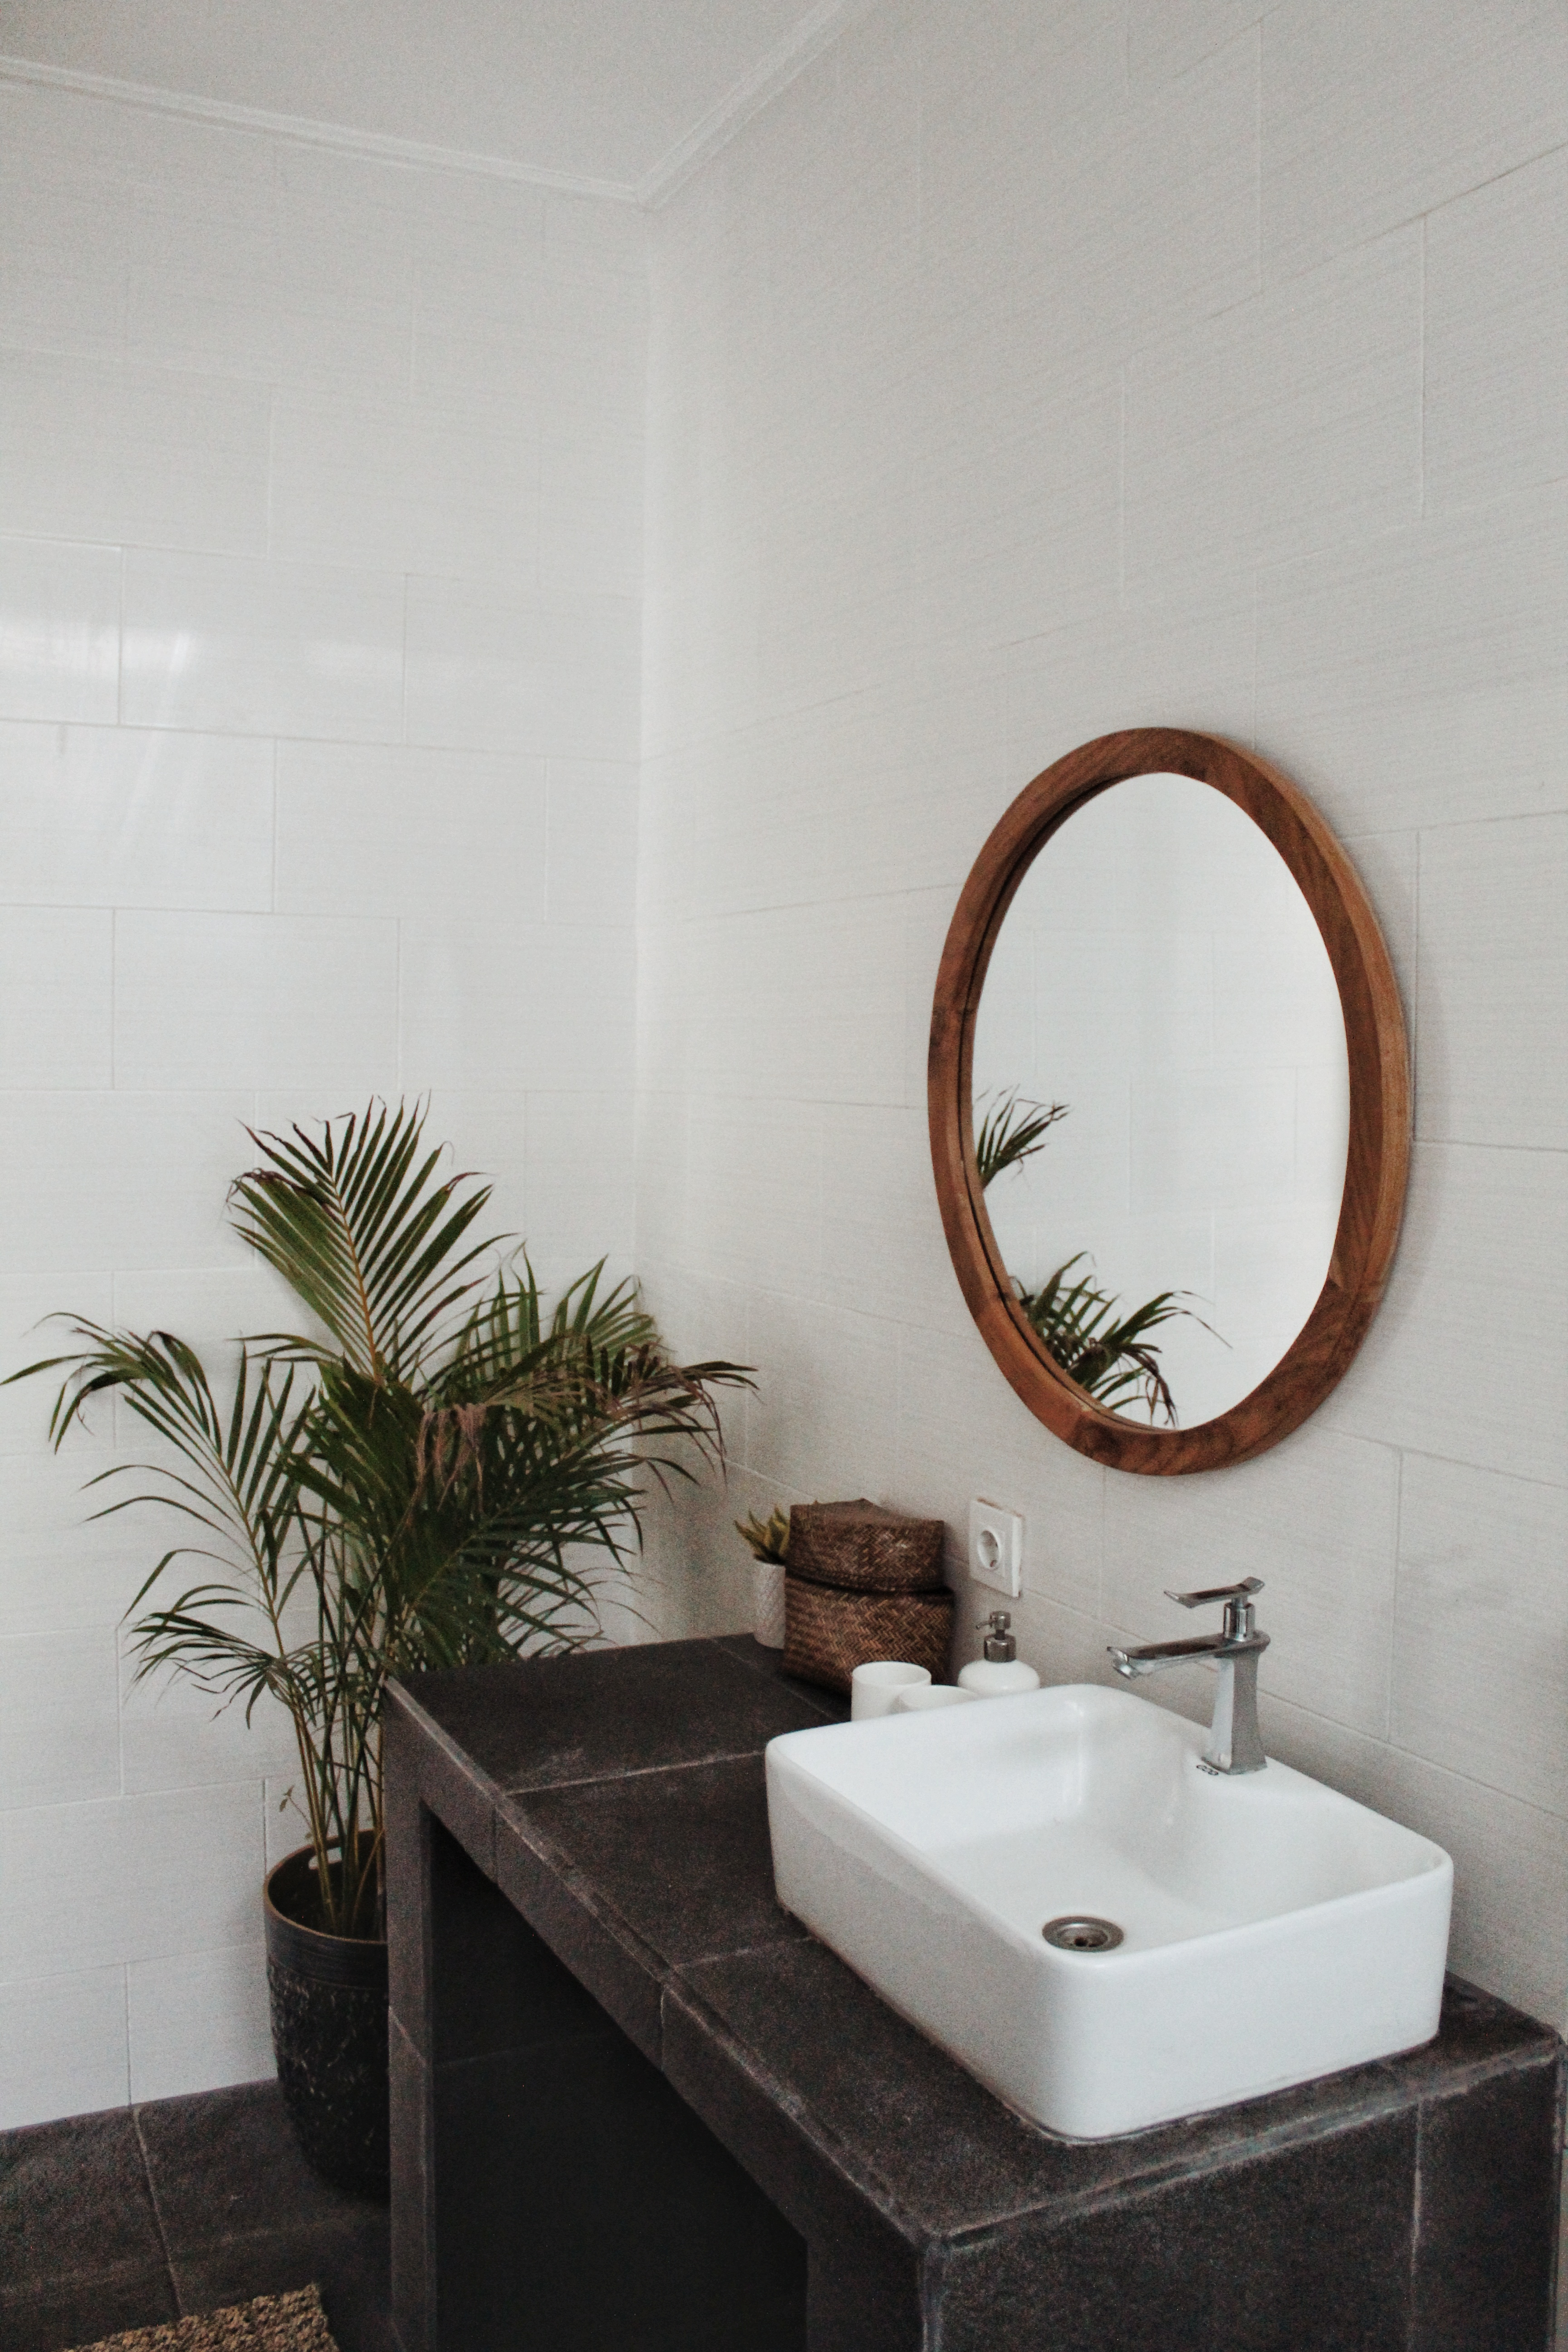 round mirror in bathroom with plant and sink